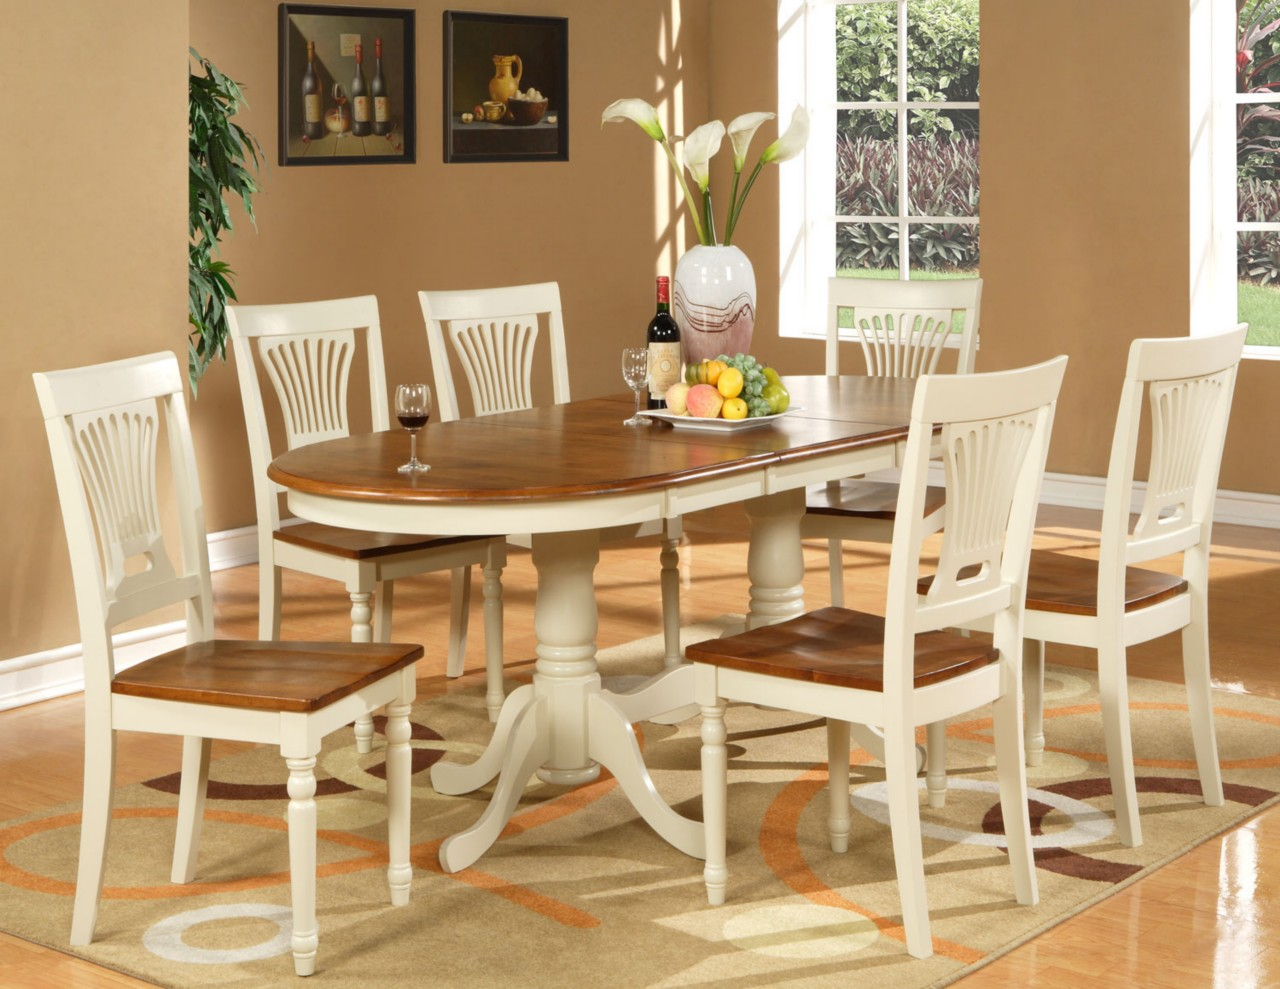 7pc oval dining room set table 6 chairs extension leaf ebay for Dining room table sets